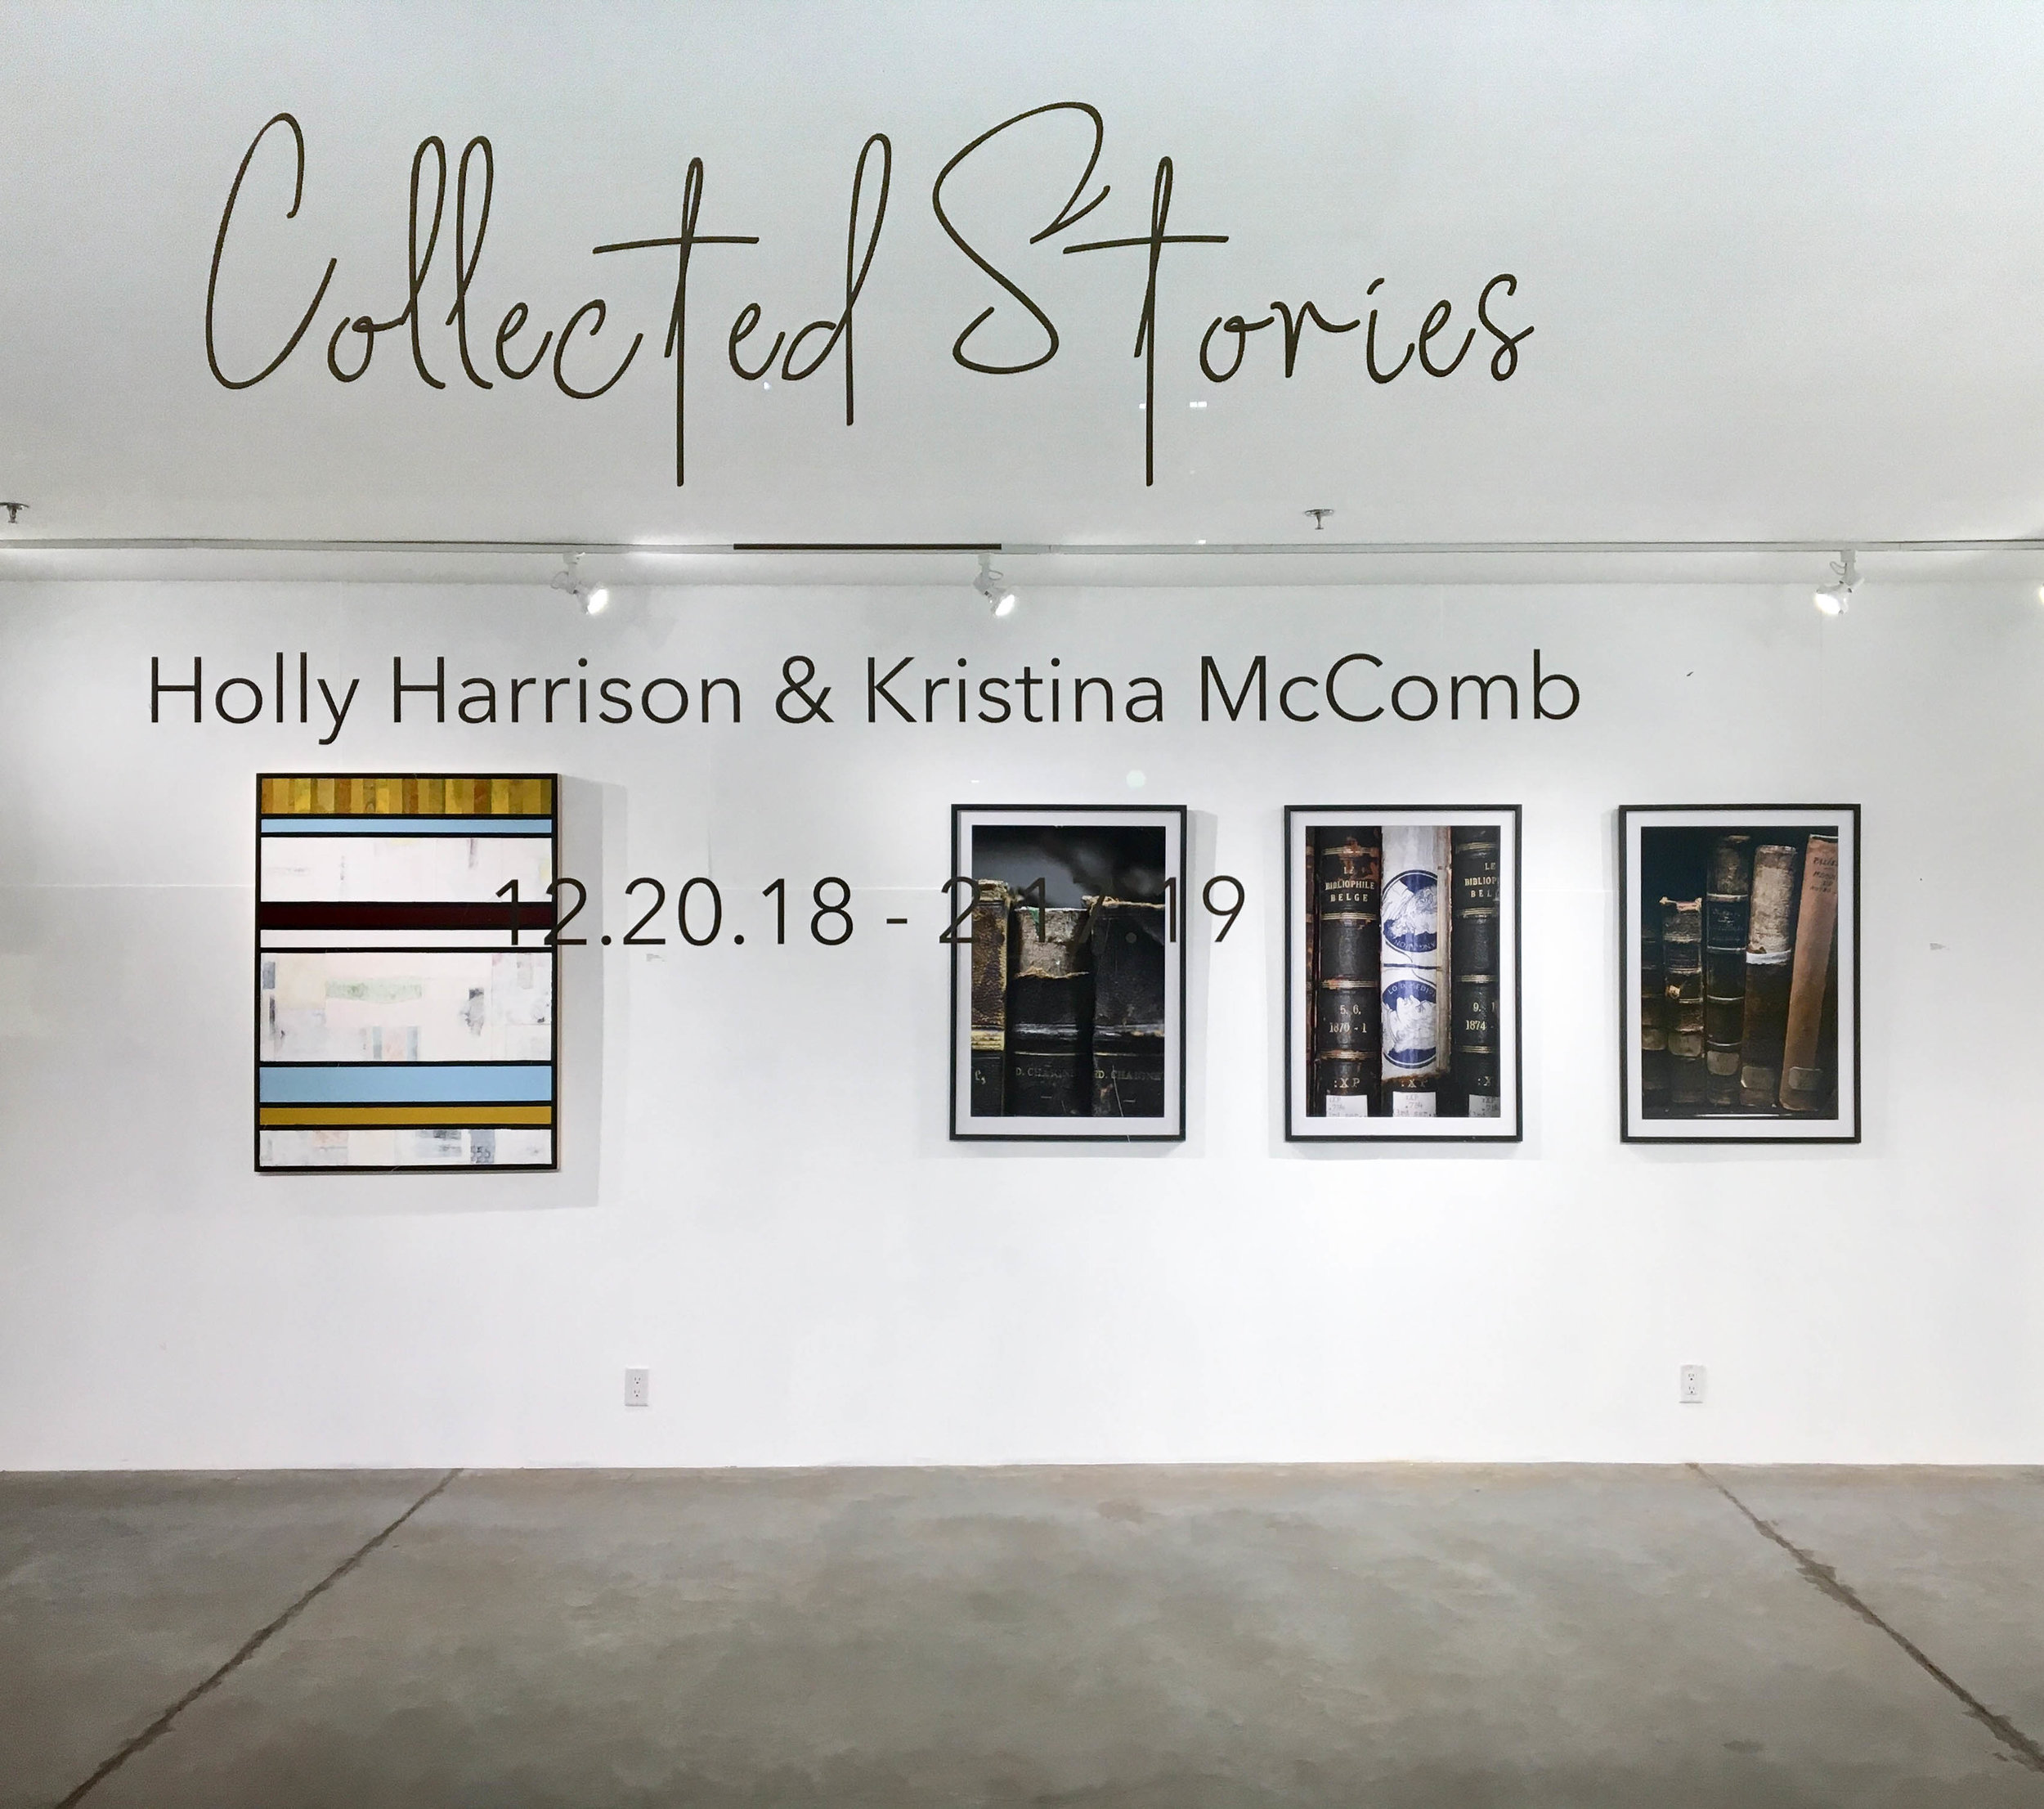 Collected Stories, Holly Harrison & Kristina McComb, Abigail Ogilvy Gallery